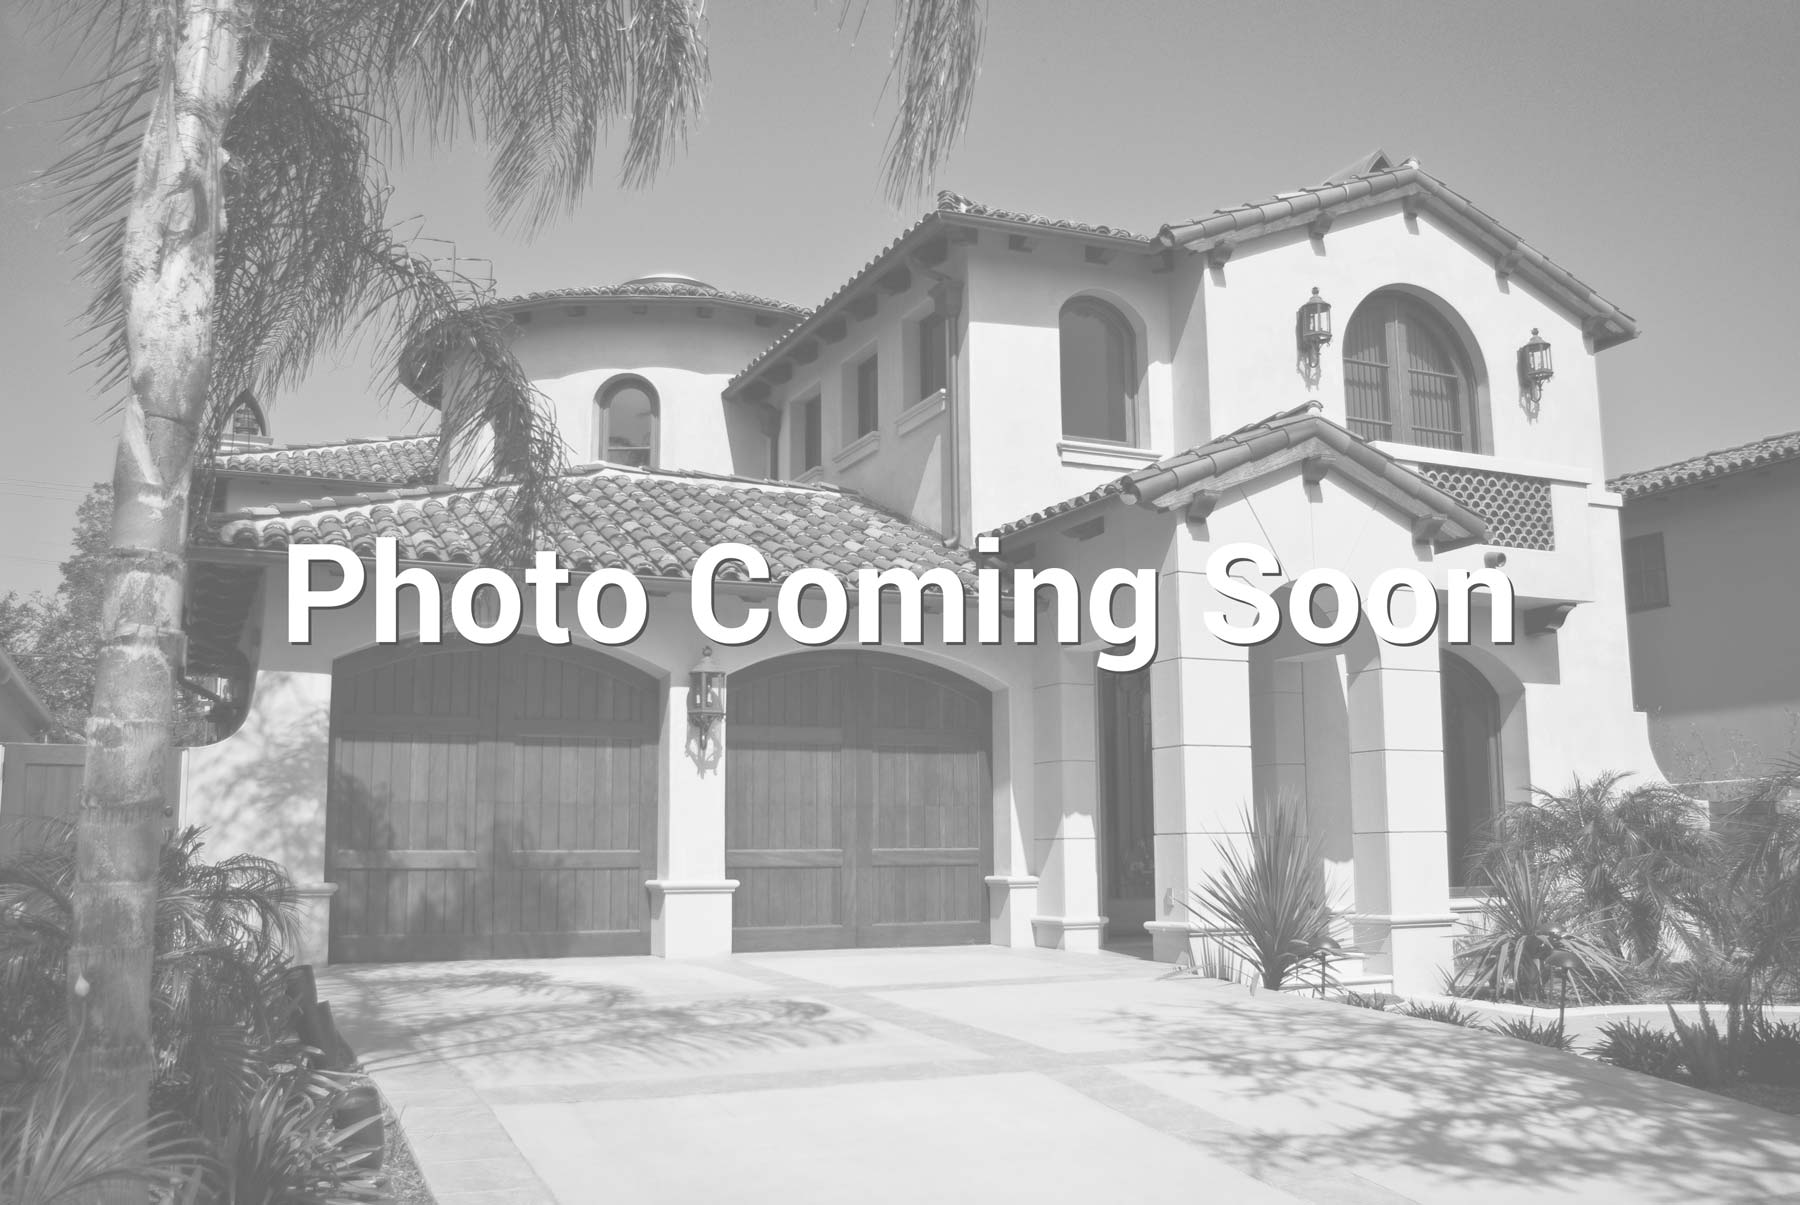 $615,000 - 5Br/3Ba -  for Sale in Chula Vista, San Diego